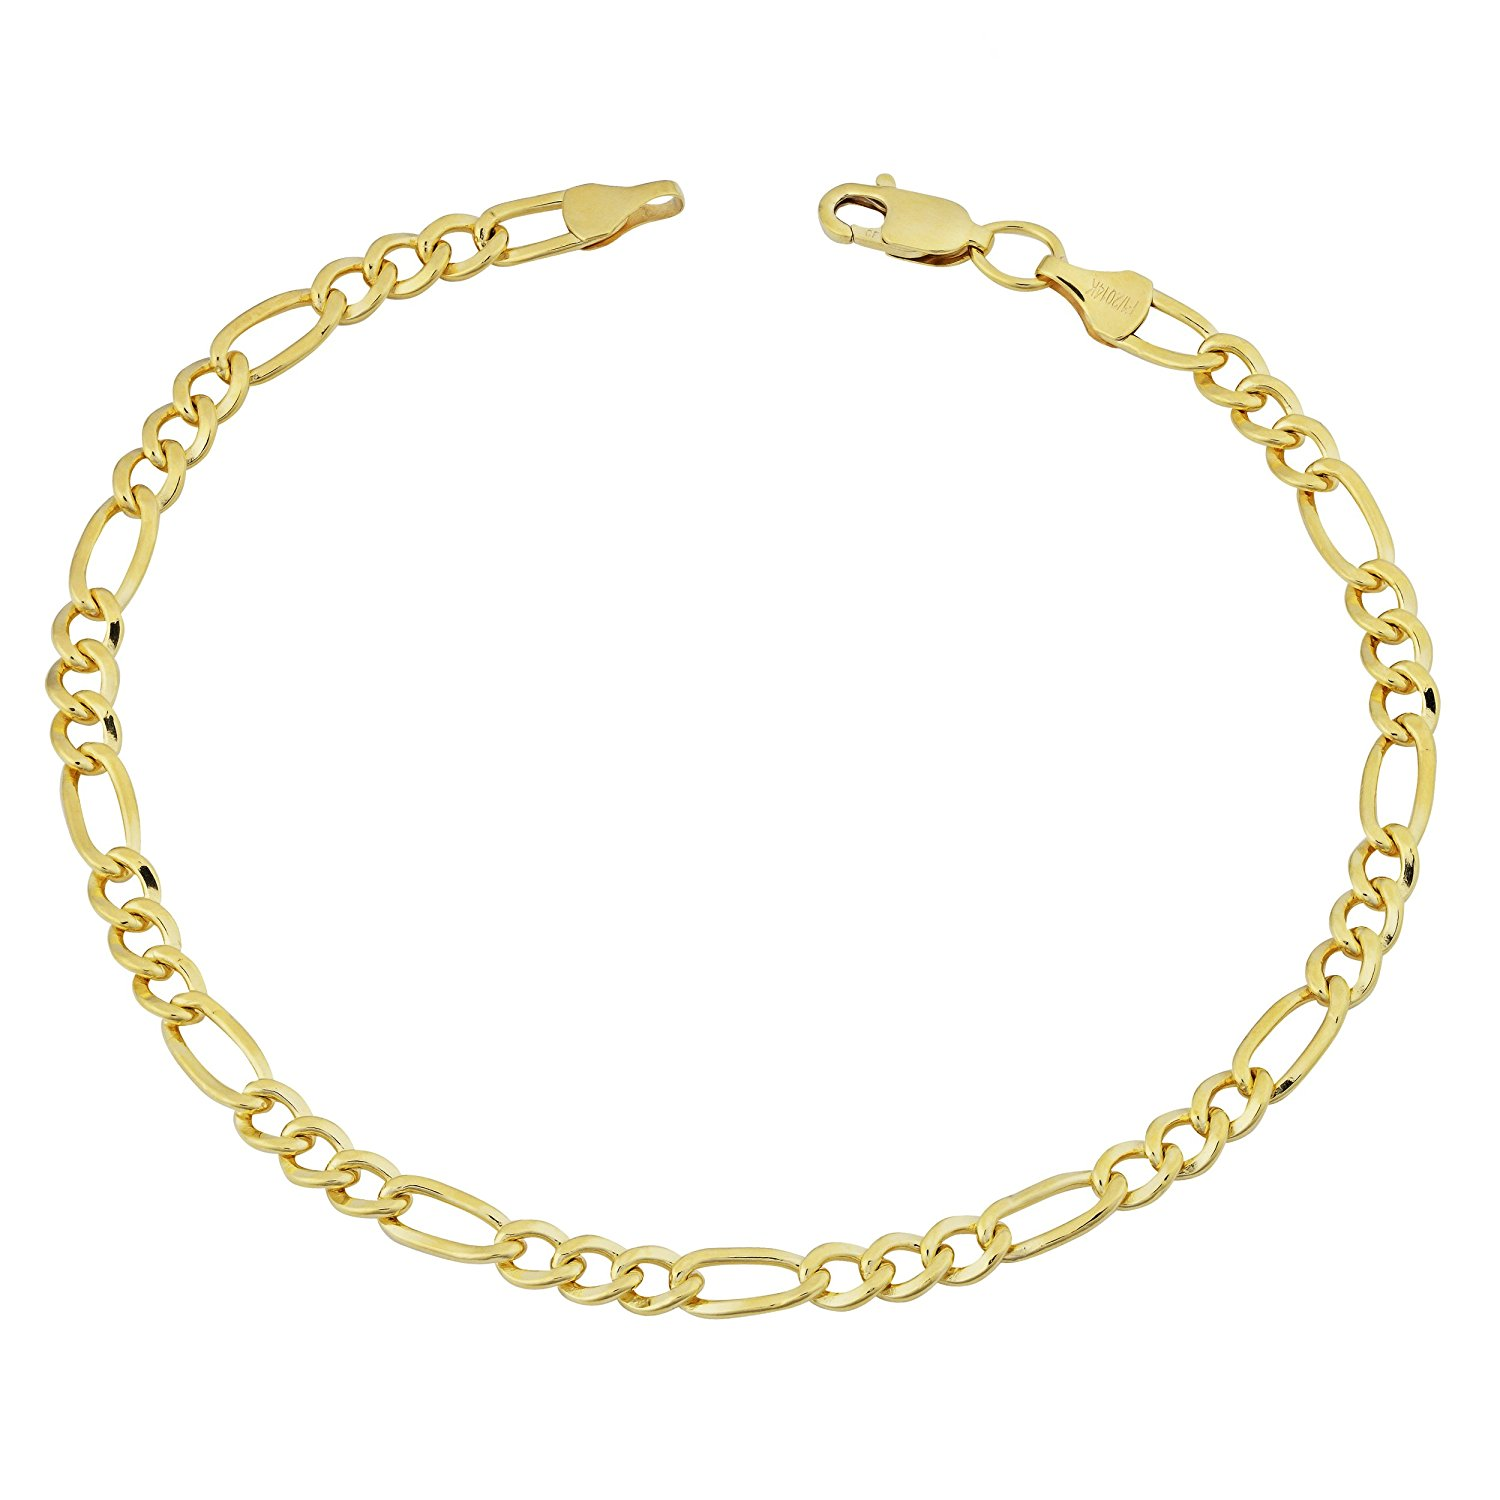 14K Yellow Gold Filled Solid Figaro Chain Bracelet, 4.0 mm, 8.5″